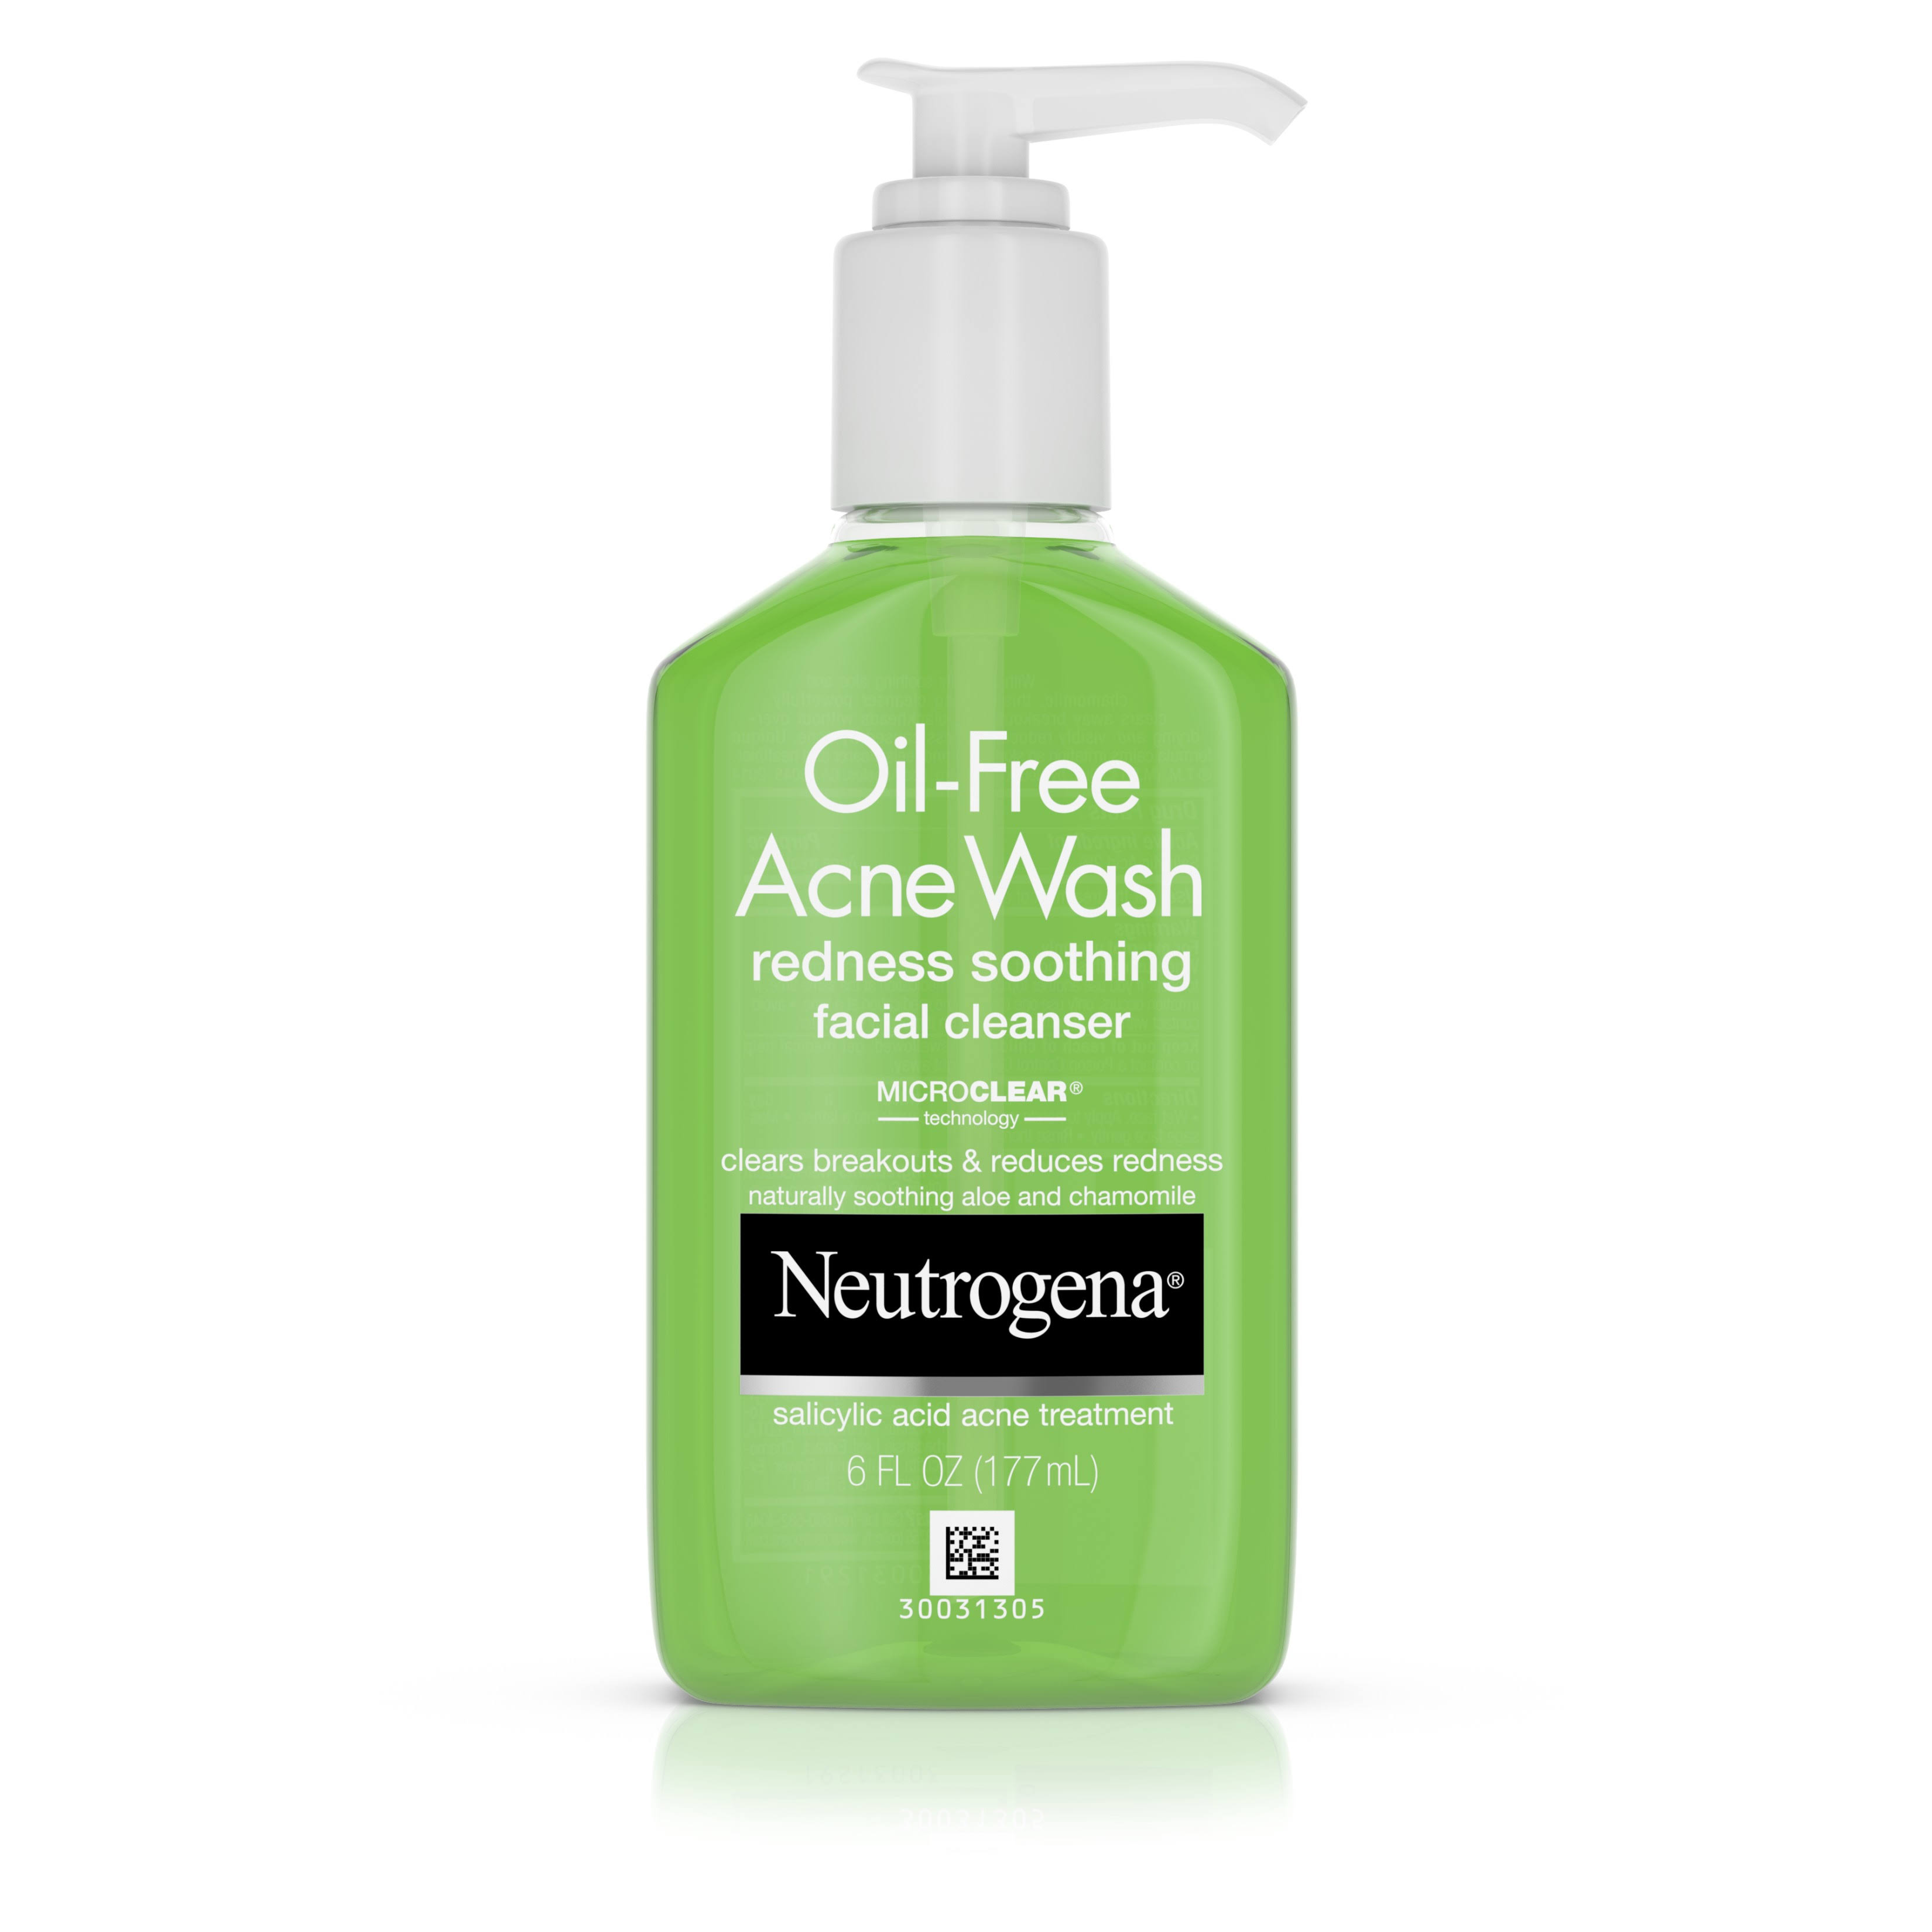 Neutrogena Oil-Free Acne Wash Facial Cleanser - 124ml